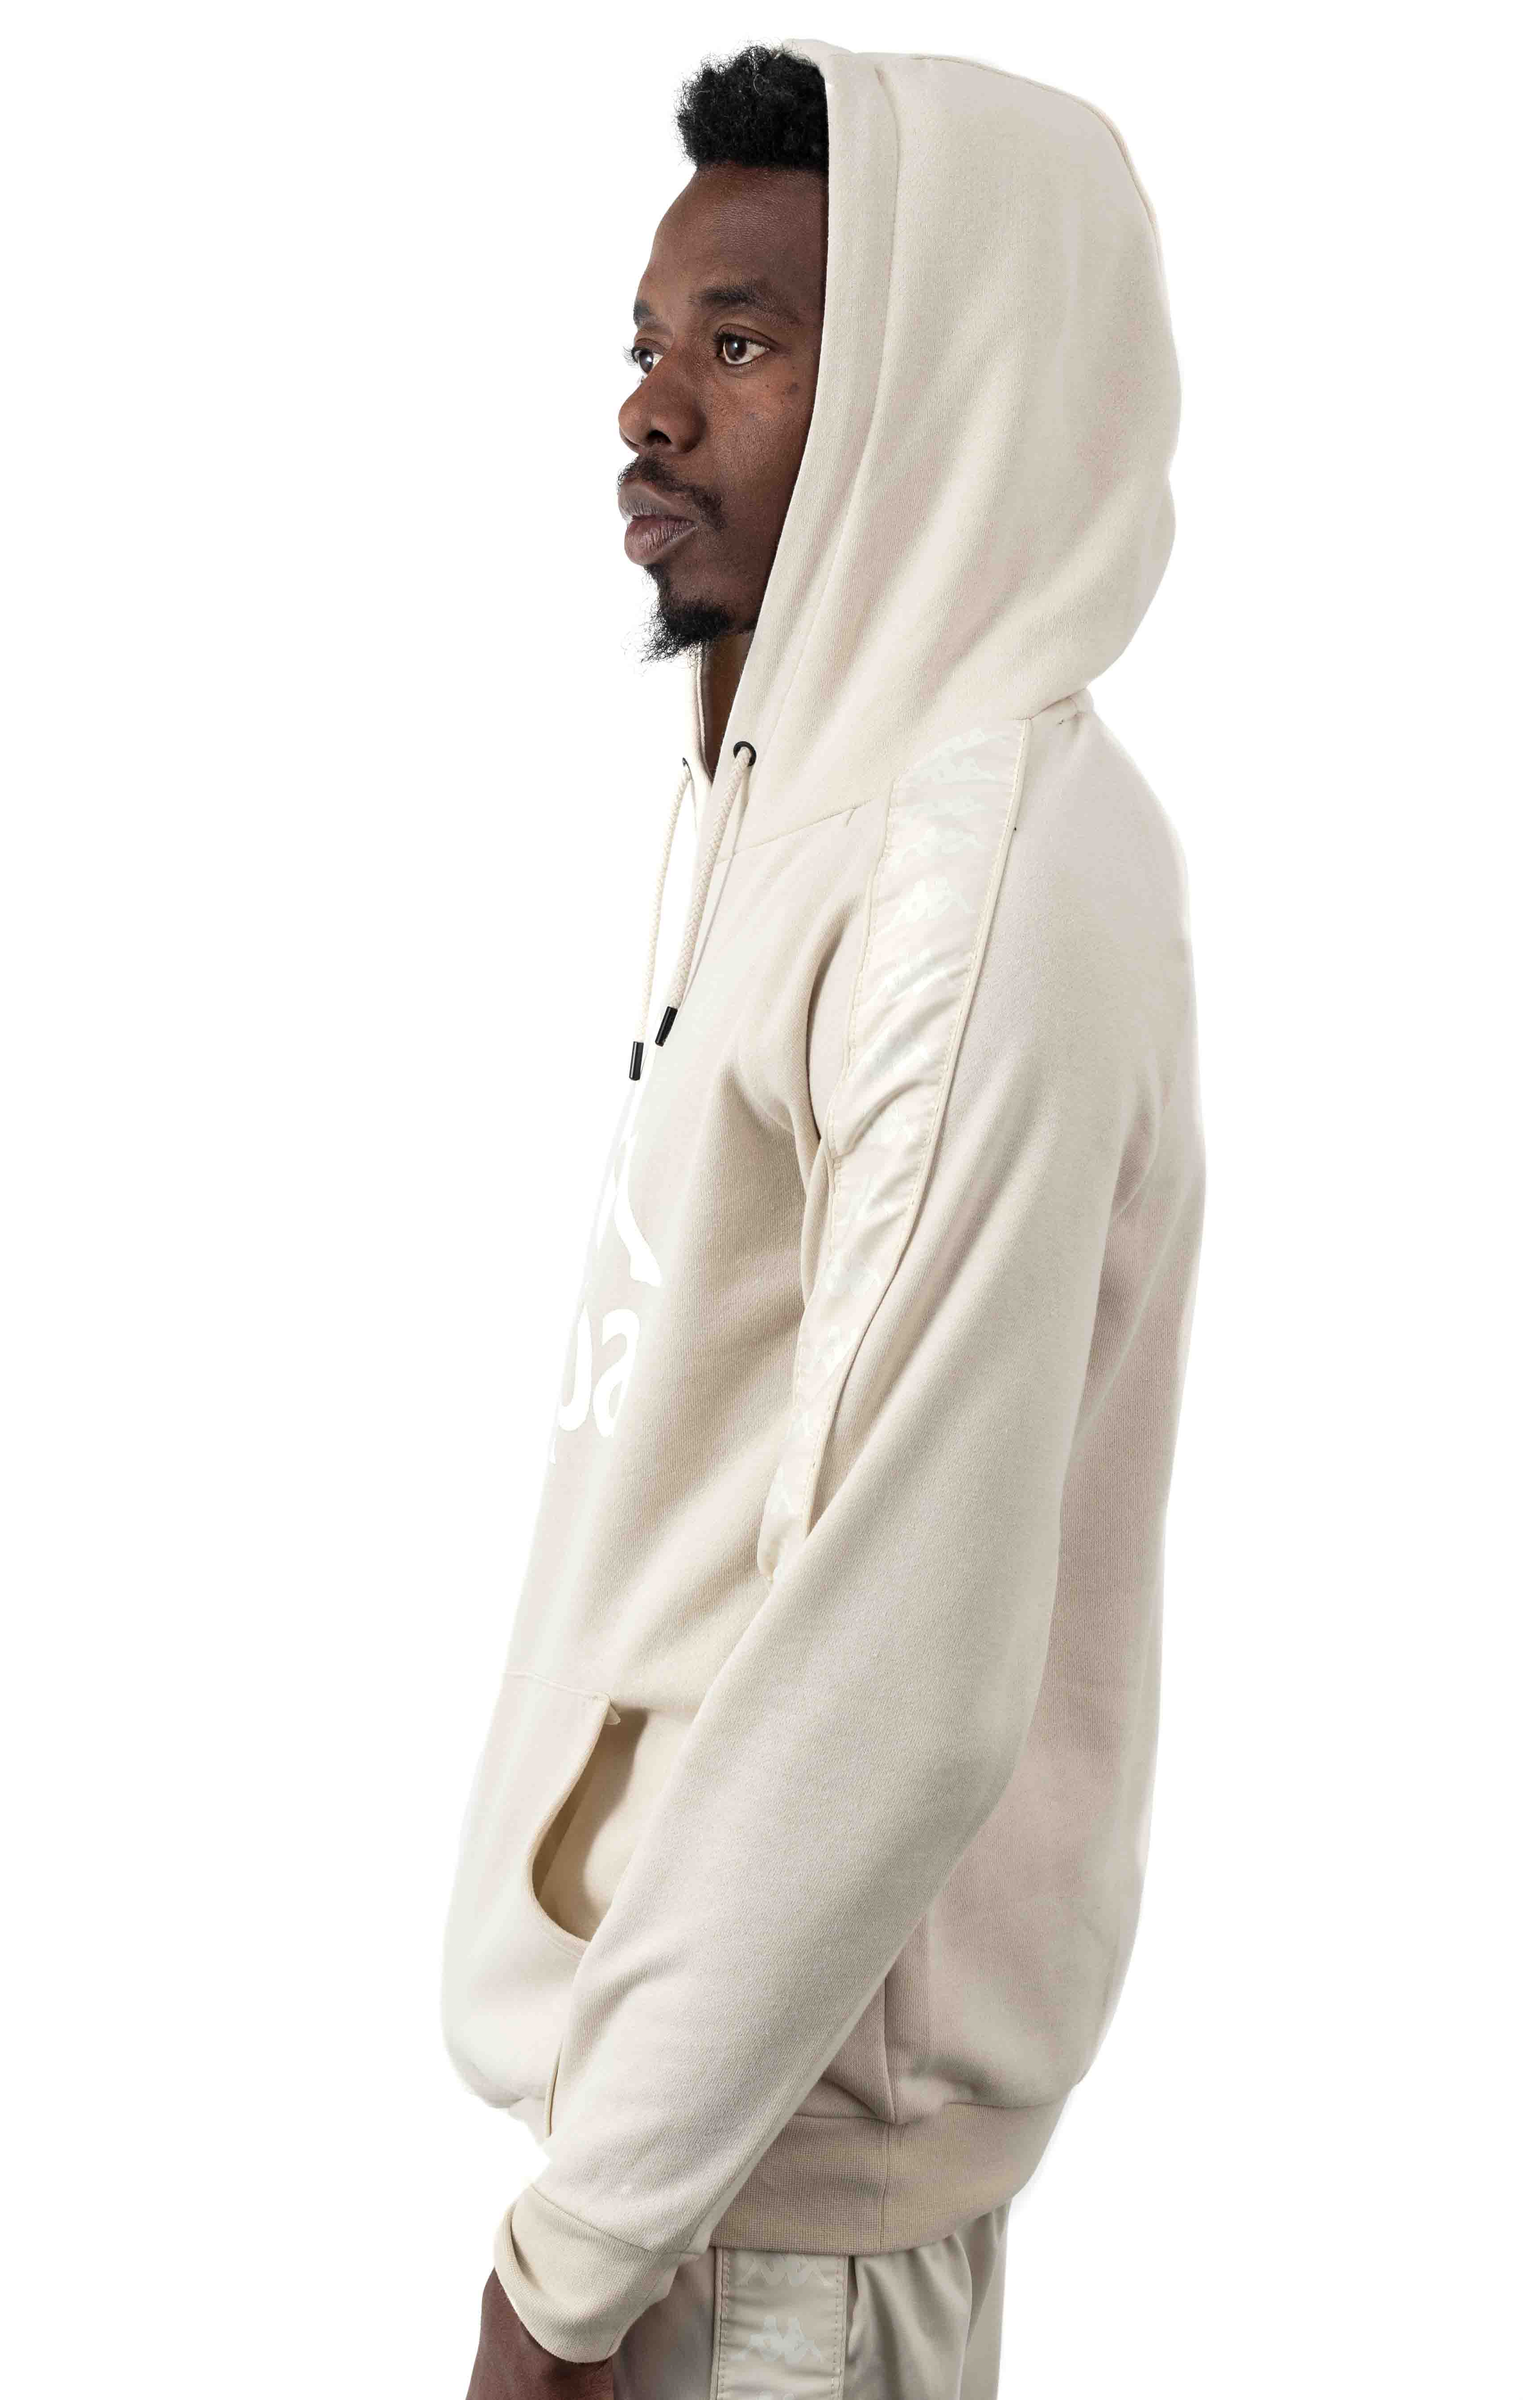 Authentic Hurtado Pullover Hoodie - Beige/White 2